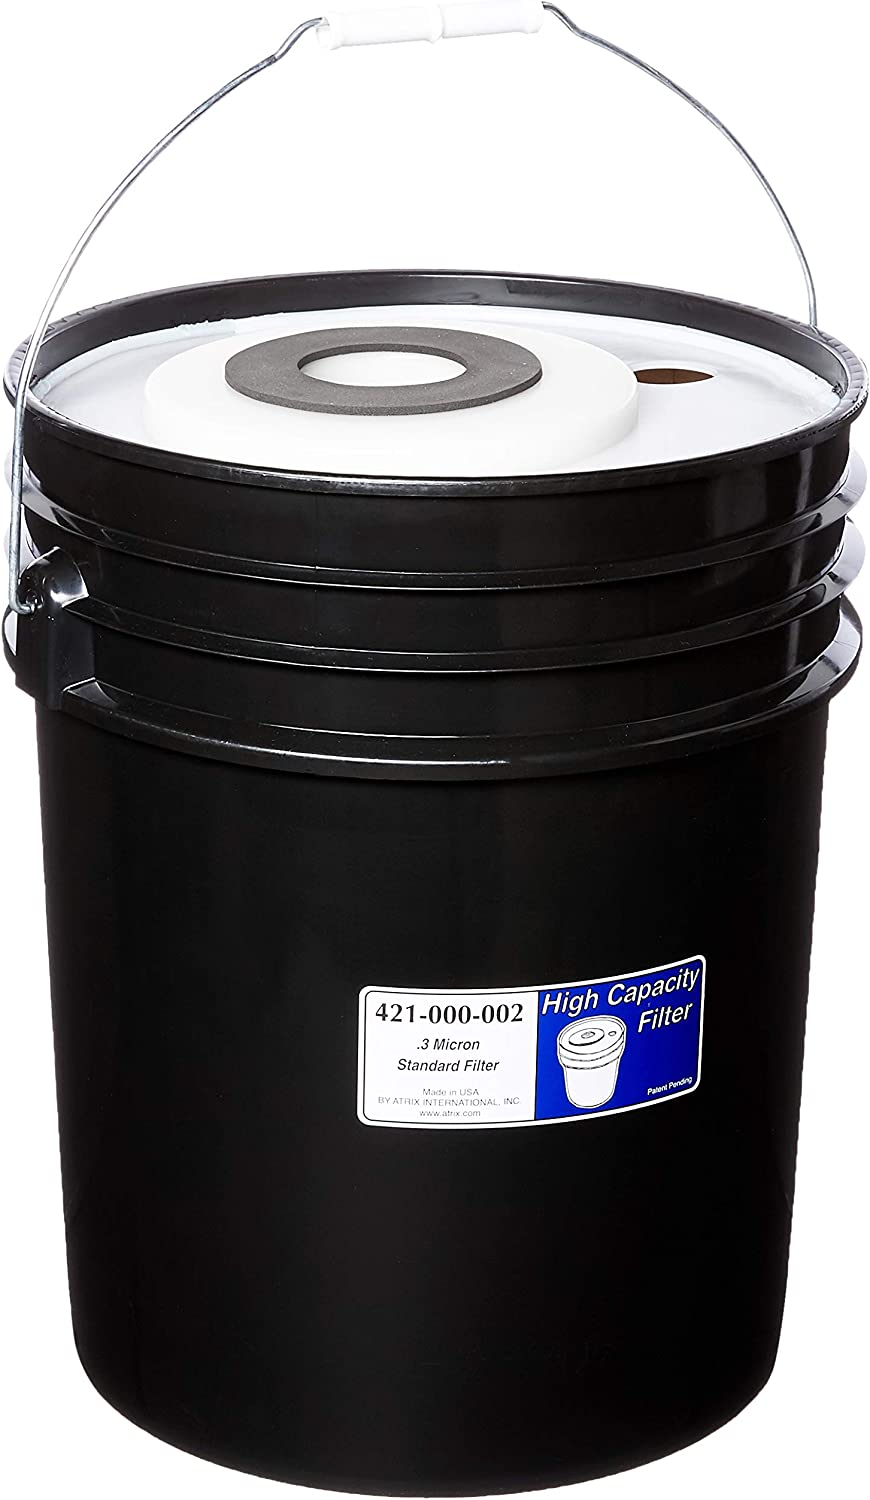 Atrix 421-000-002 5-Gallon Bucket List price for ATIHCTV5 Filter 70% OFF Outlet